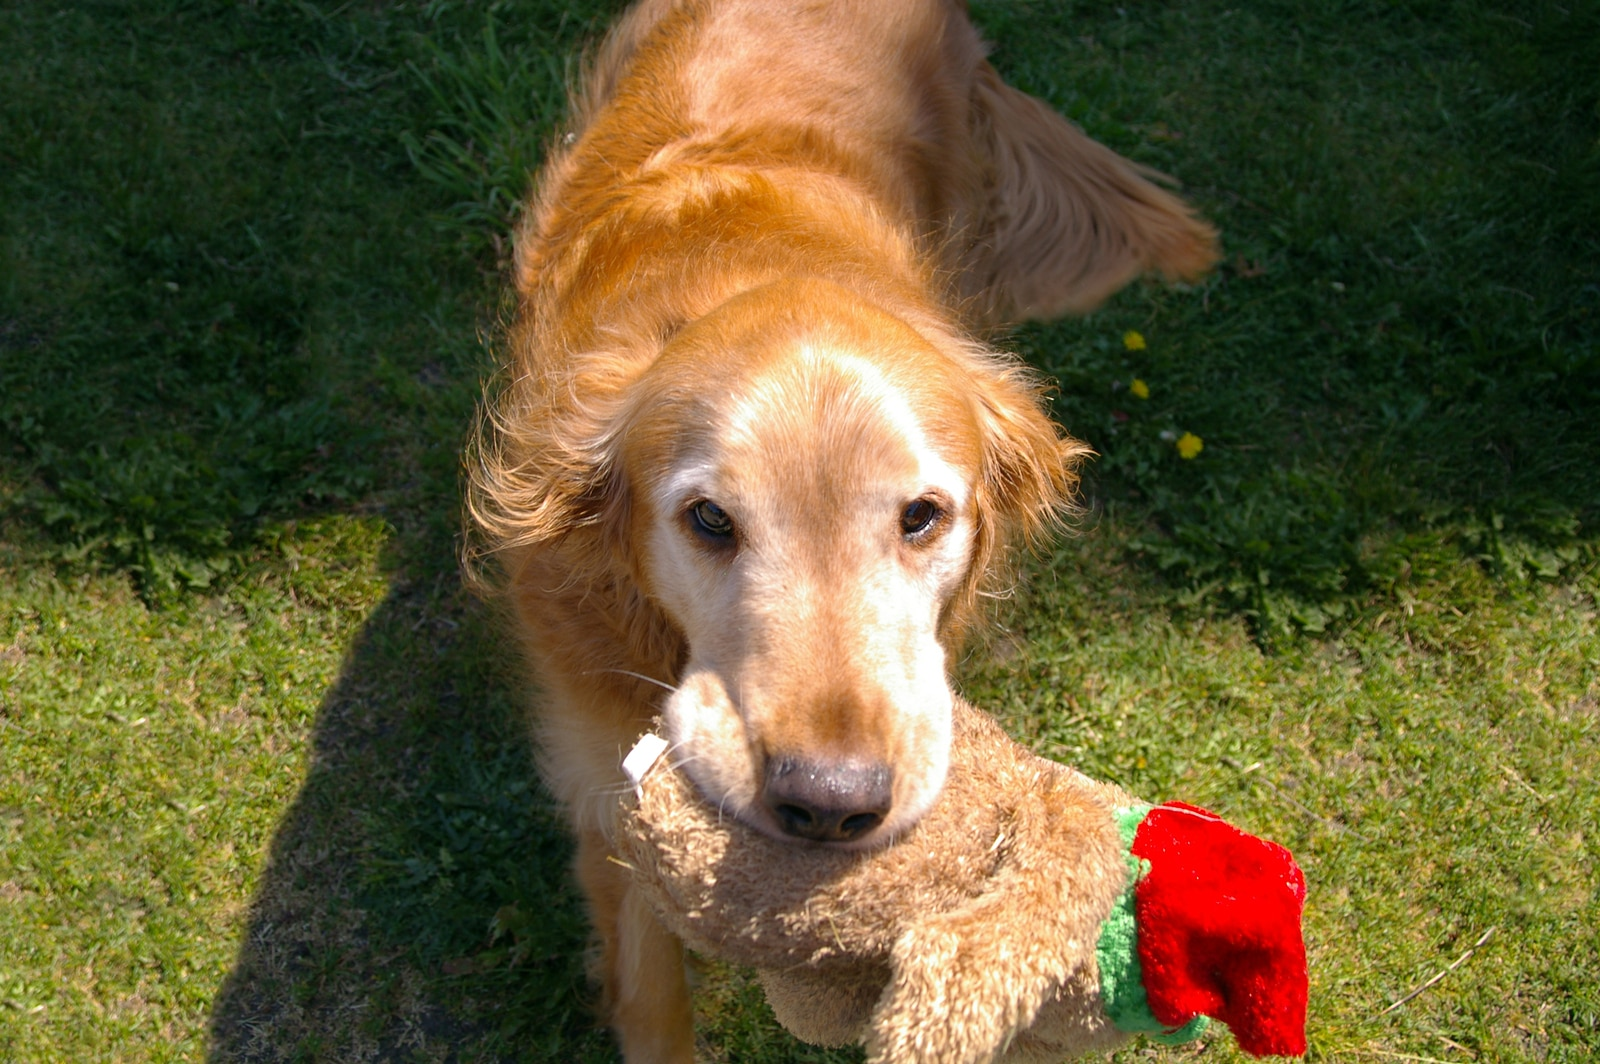 Older golden retriever with a stuffed animal in its mouth outside.